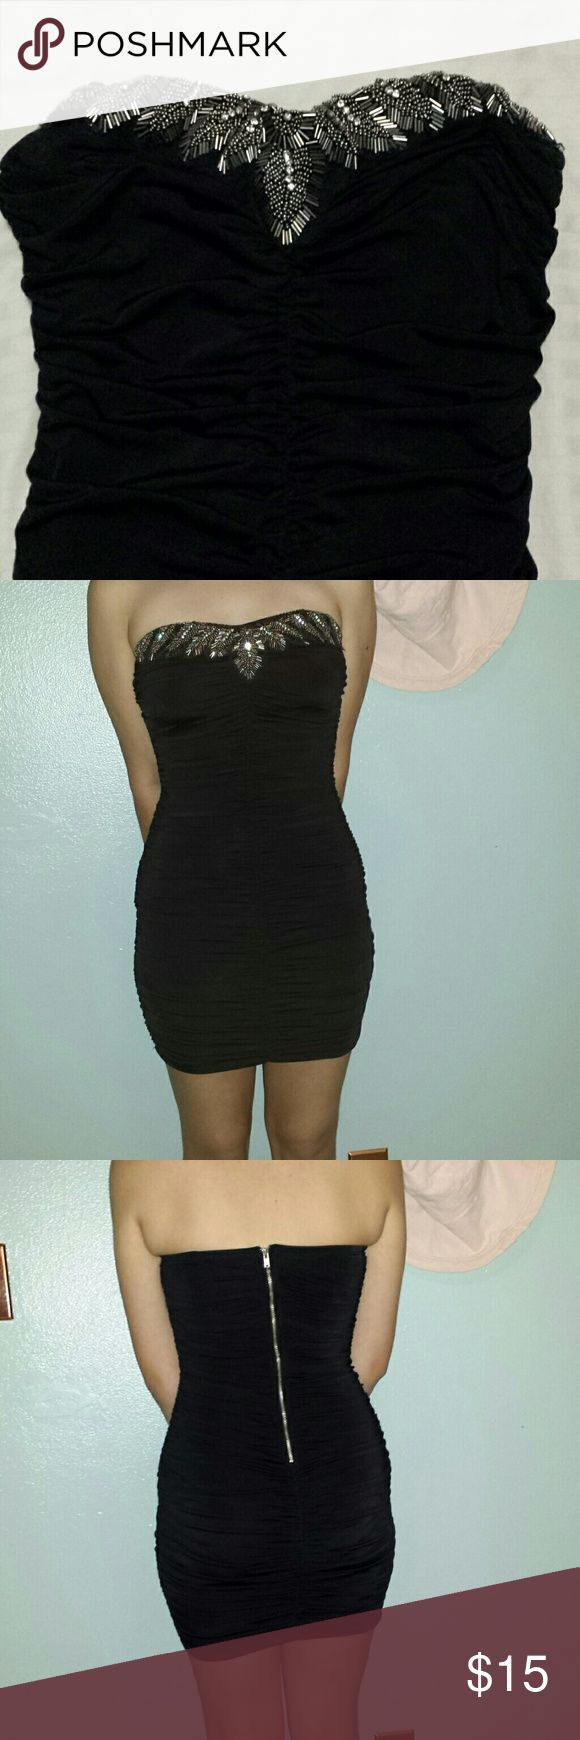 Black evening /party dress Fitted strapless  ruched dress. Sparkly detail at the chest. Fabulous number for ringing in the new year. Forever 21 Dresses Mini